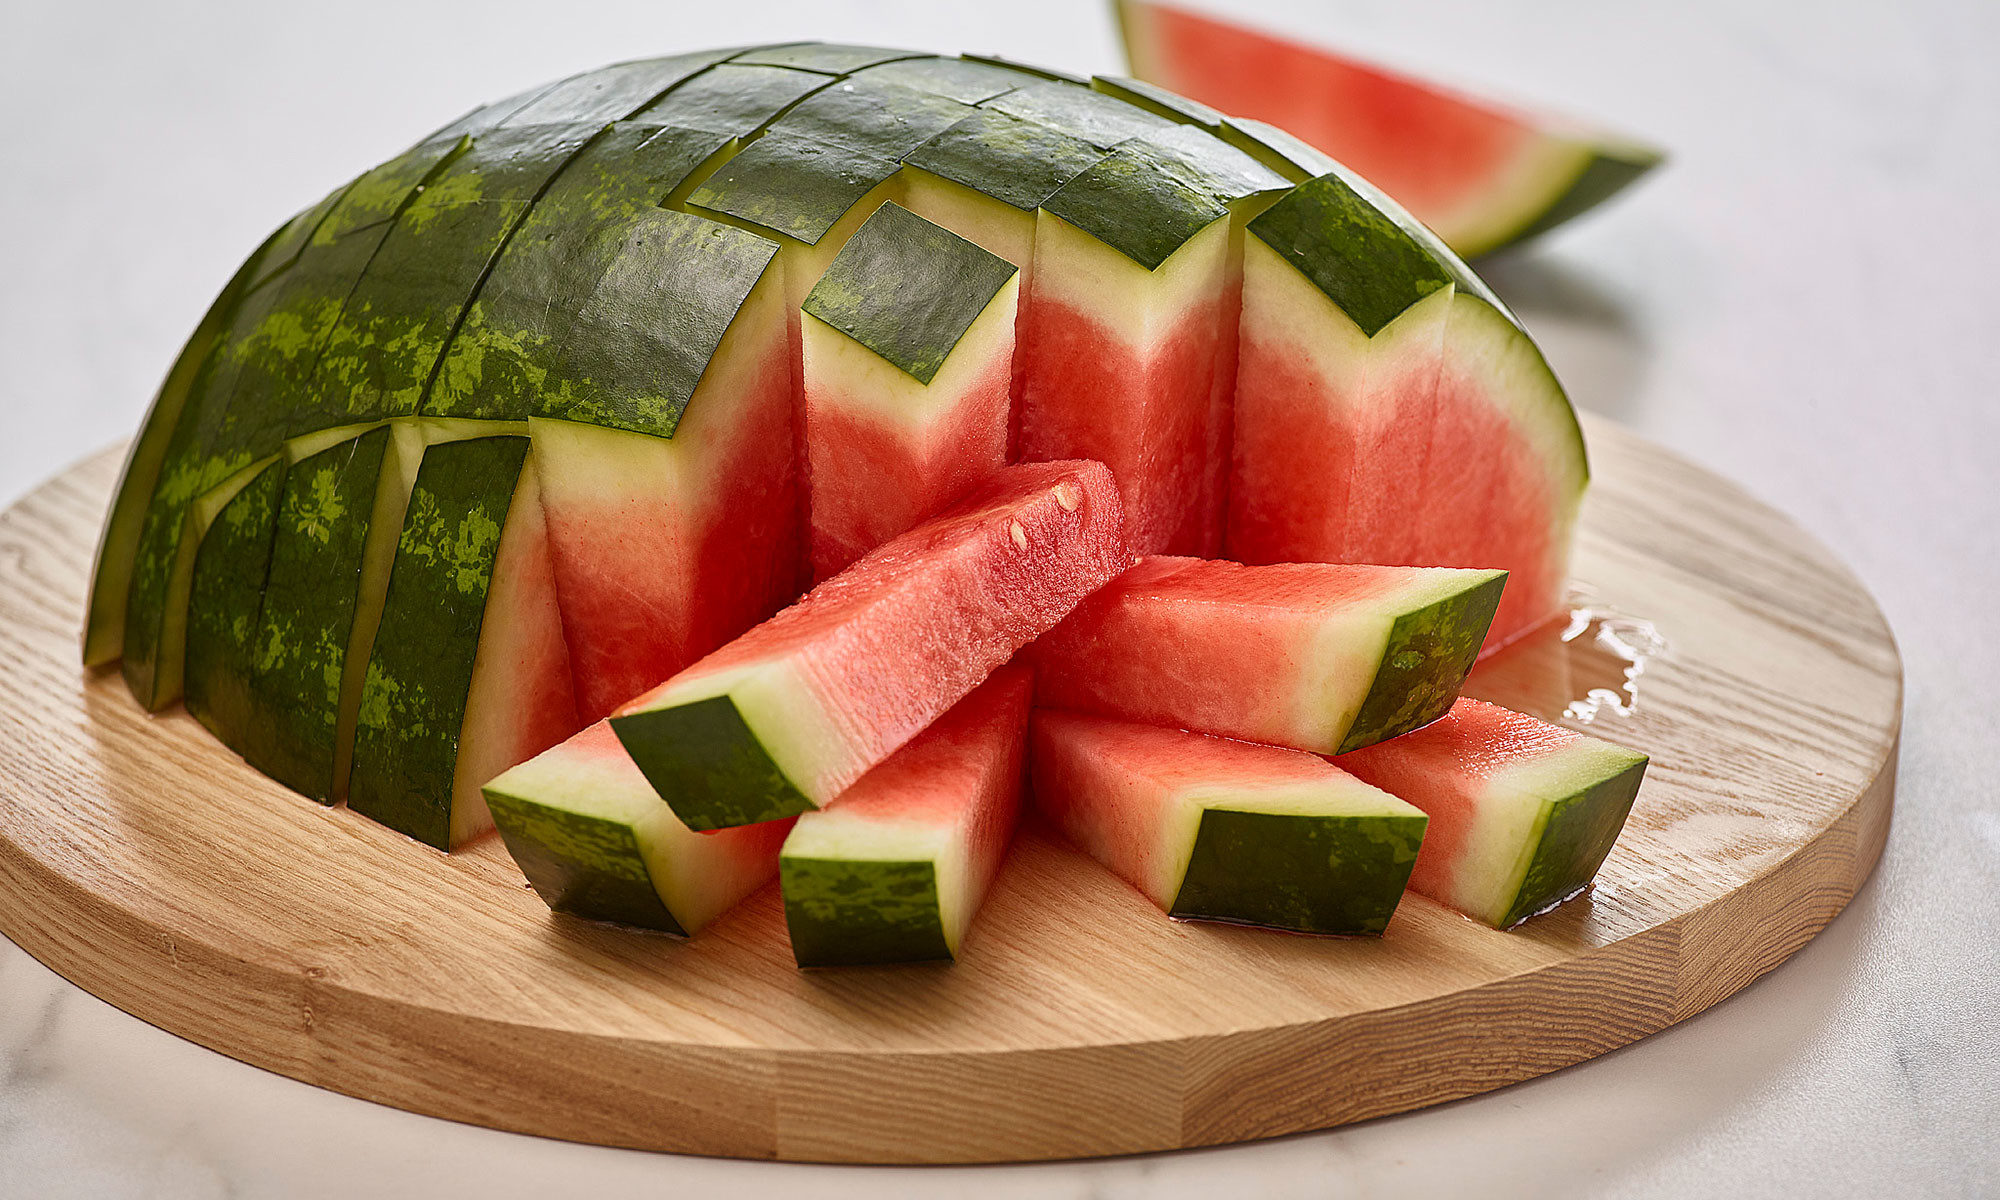 half watermelon cut into sticks on top of round wooden cutting board